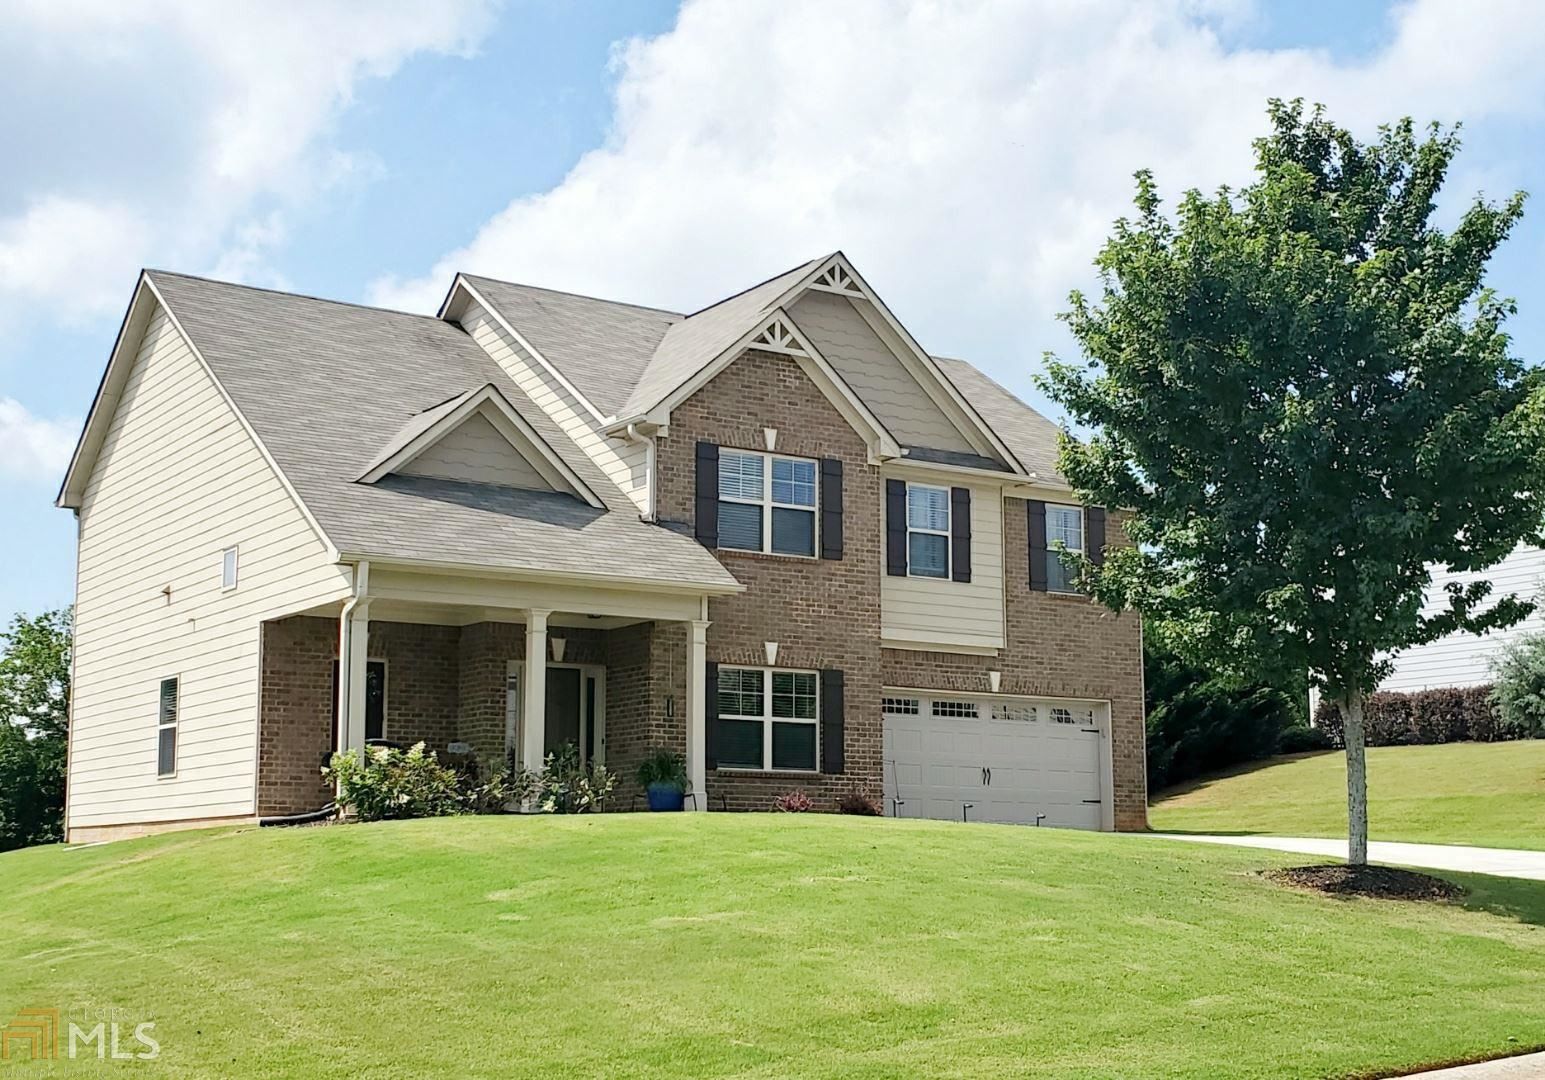 1074 Abe Lincoln Way, Jefferson, GA 30549 - #: 8808431